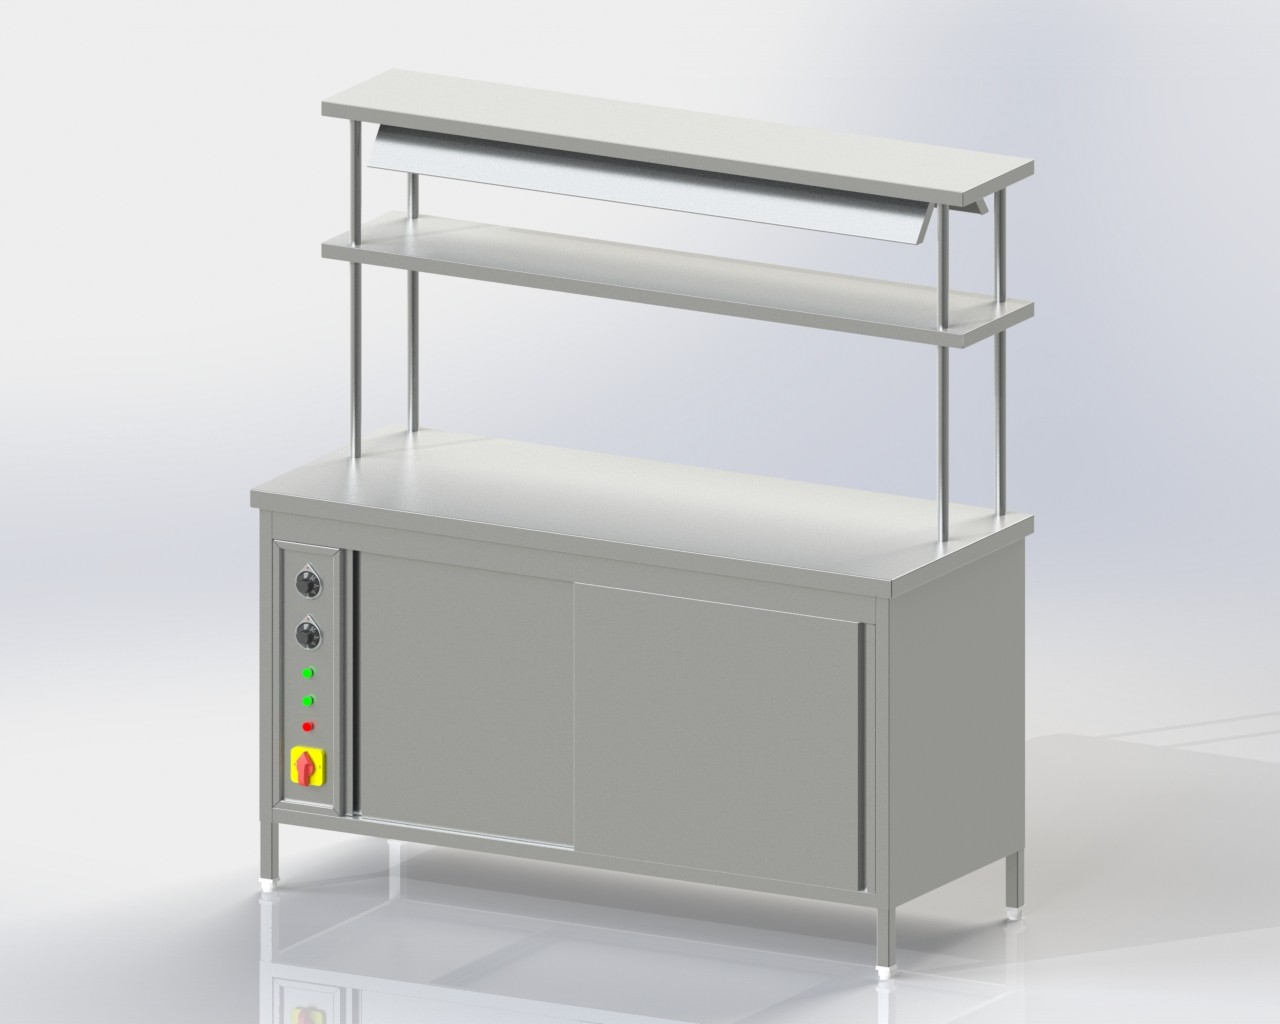 Pick up Counter 2u-s and 2 o-s + hot case